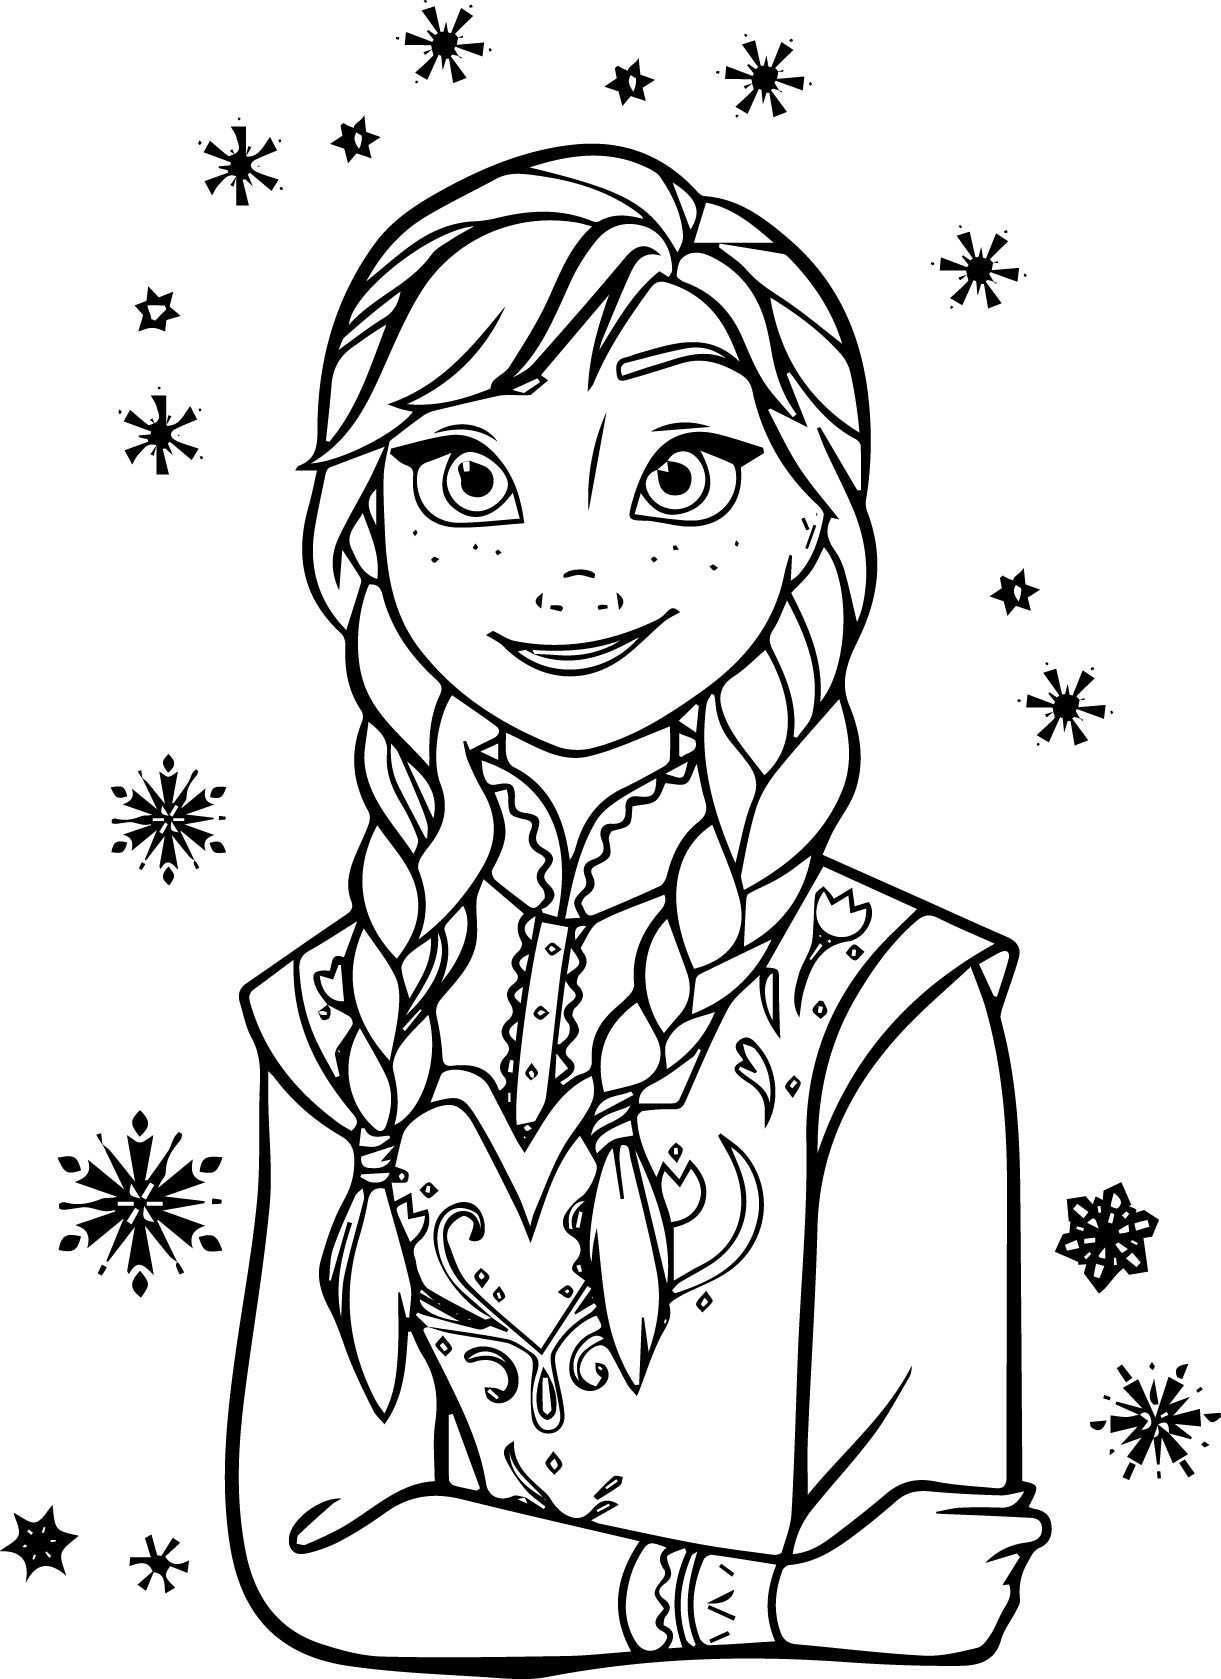 Ana And Elsa Coloring Pages  Elsa and Anna Coloring Pages New Elsa and Anna Coloring